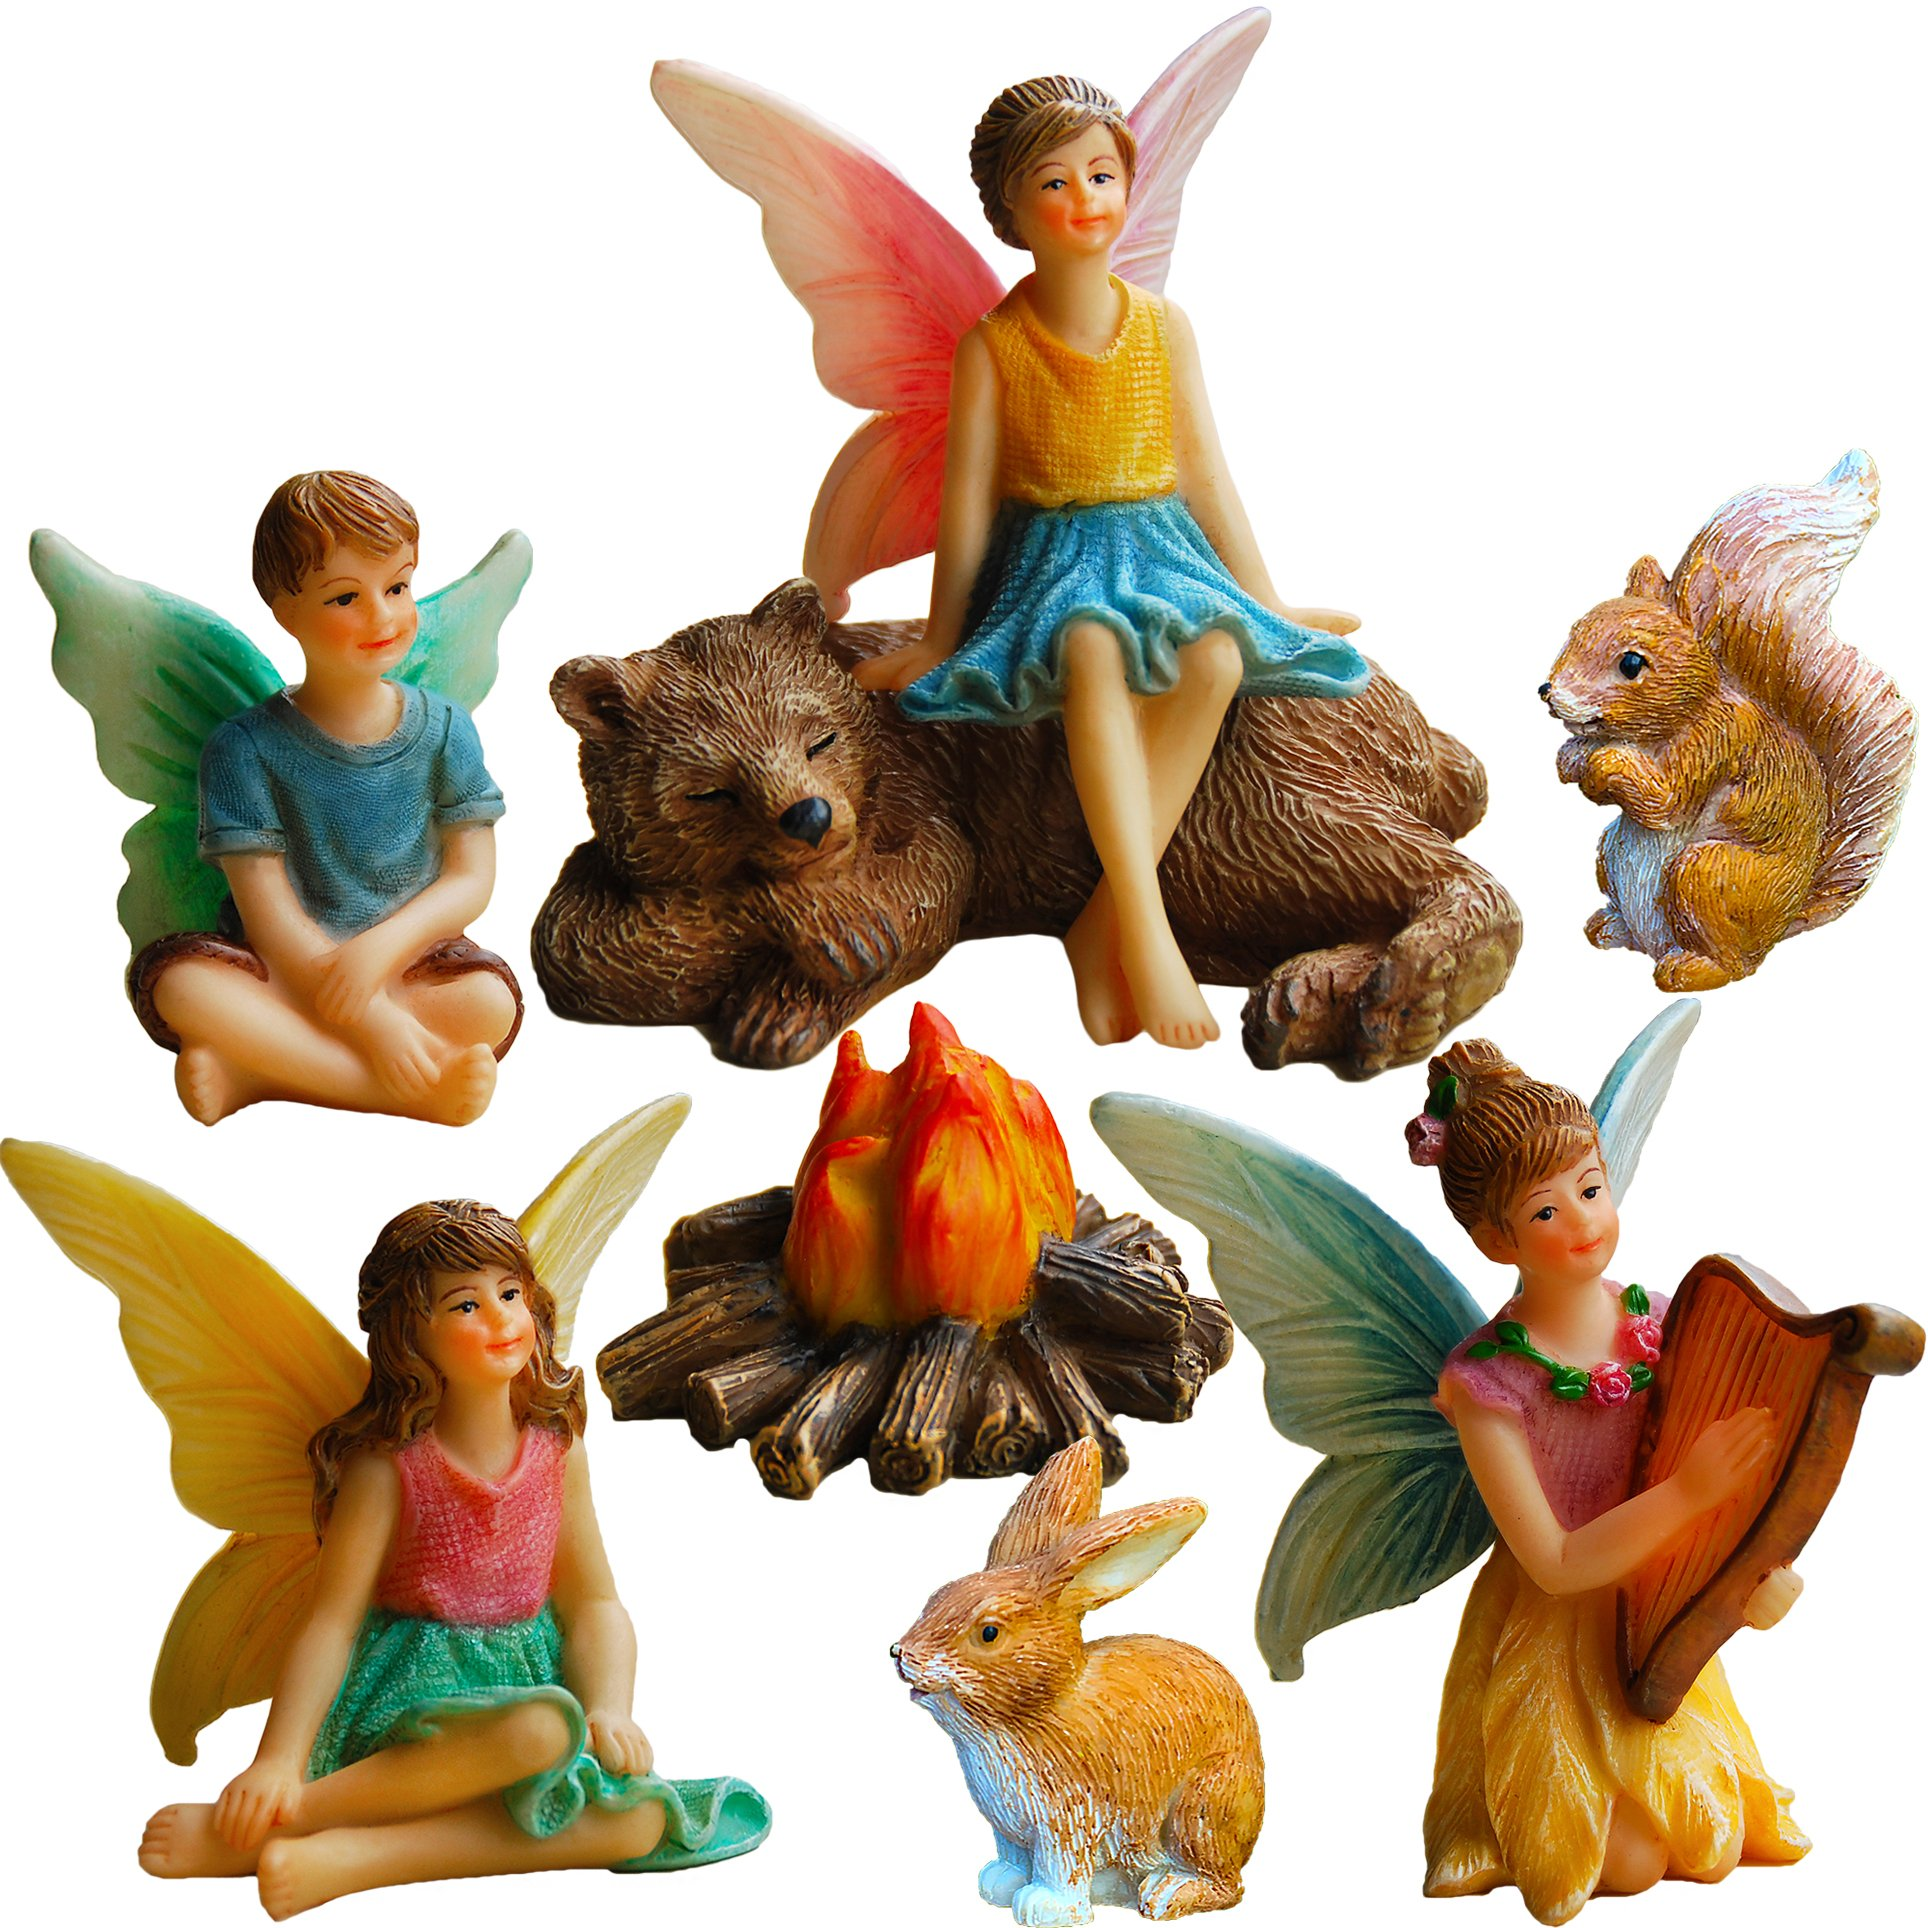 Mood Lab Fairy Garden Fairies - Miniature Figurines Accessories - Camping Fun Set of 8 pcs - Hand Painted Kit Outdoor House Decor